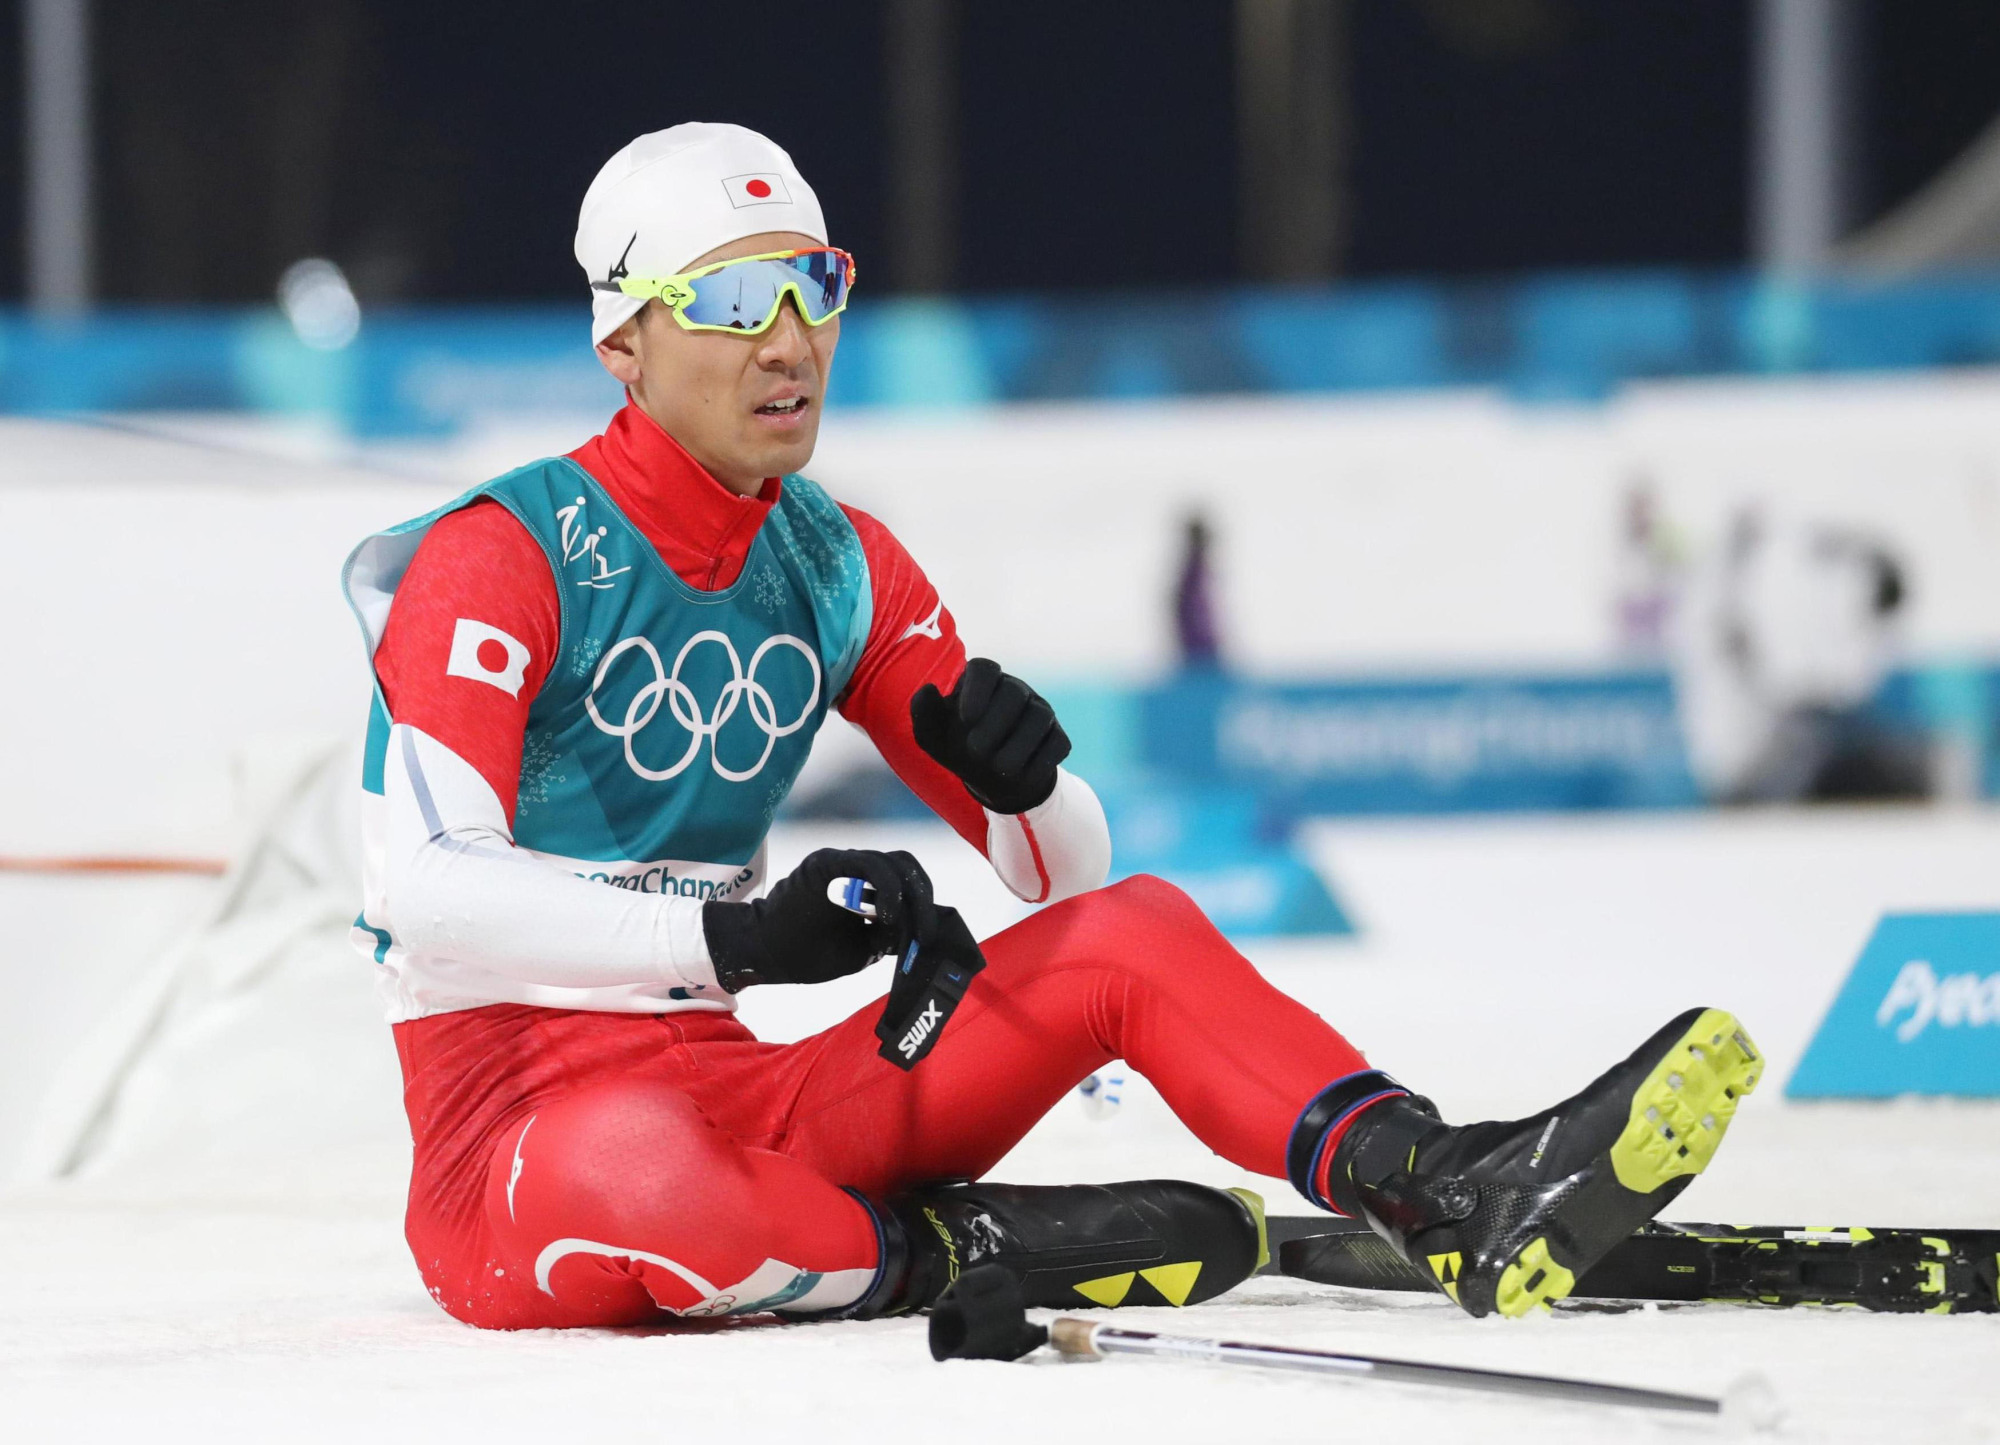 Akito Watabe reacts at the end of the Nordic combined competition at the Pyeongchang Olympics on Tuesday.